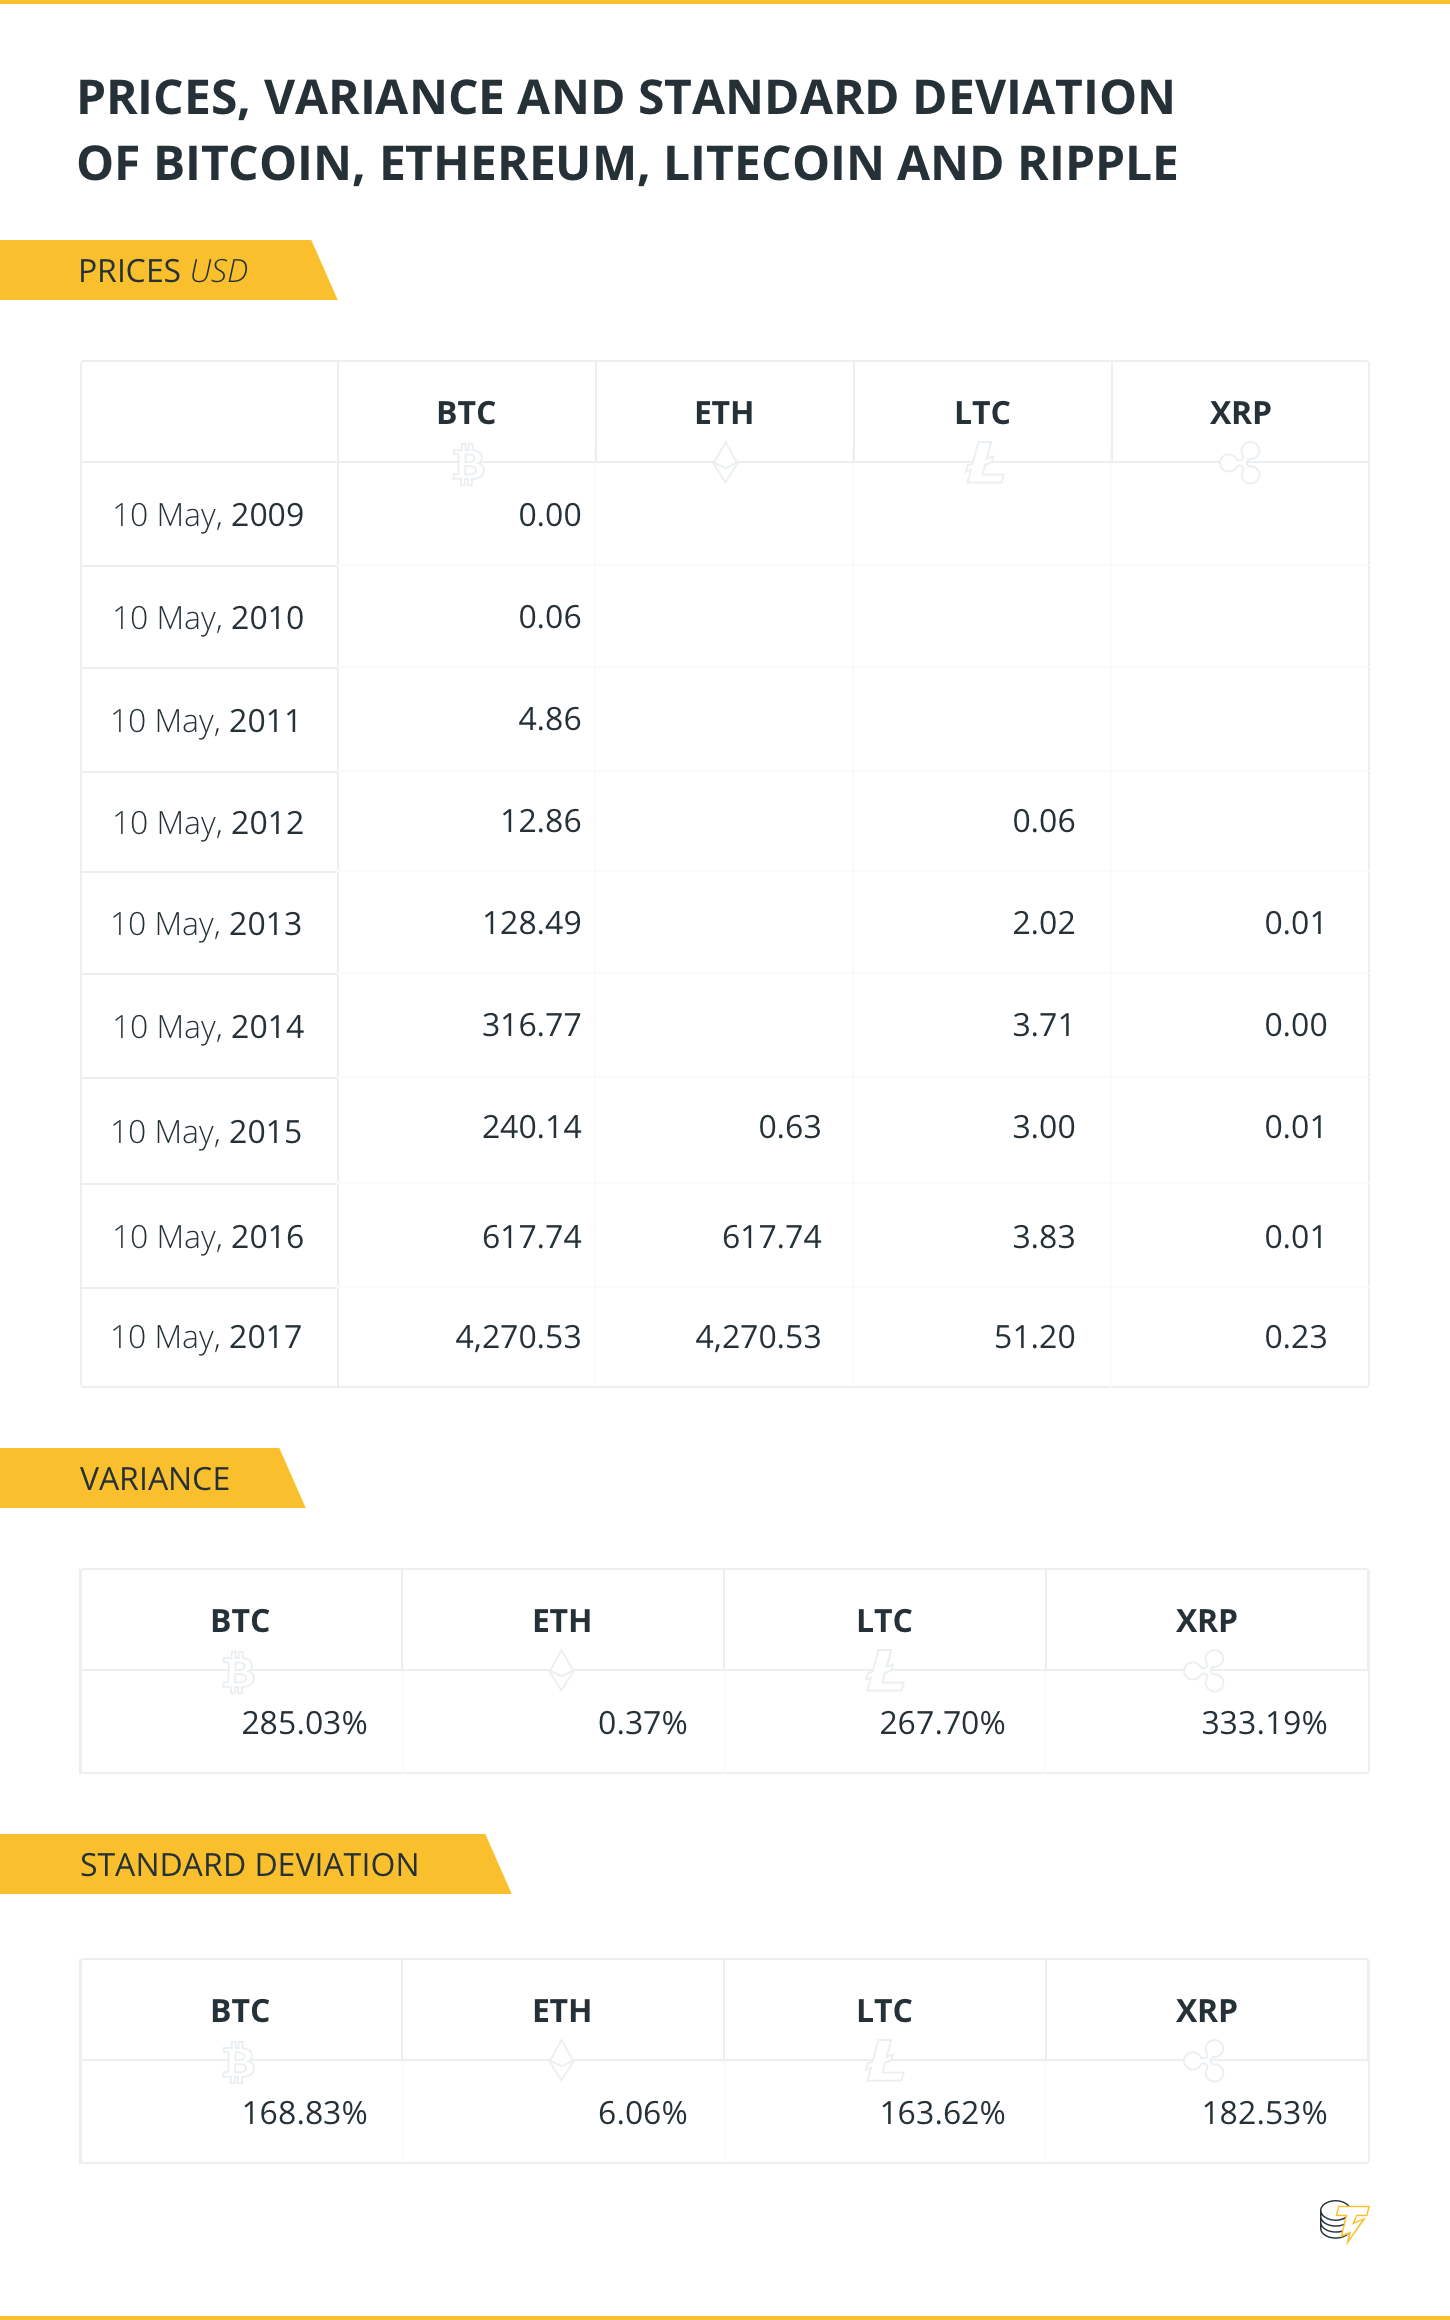 PRICES, VARIANCE AND STANDARD DEVIATION OF BTC, ETH, LTC, XRP